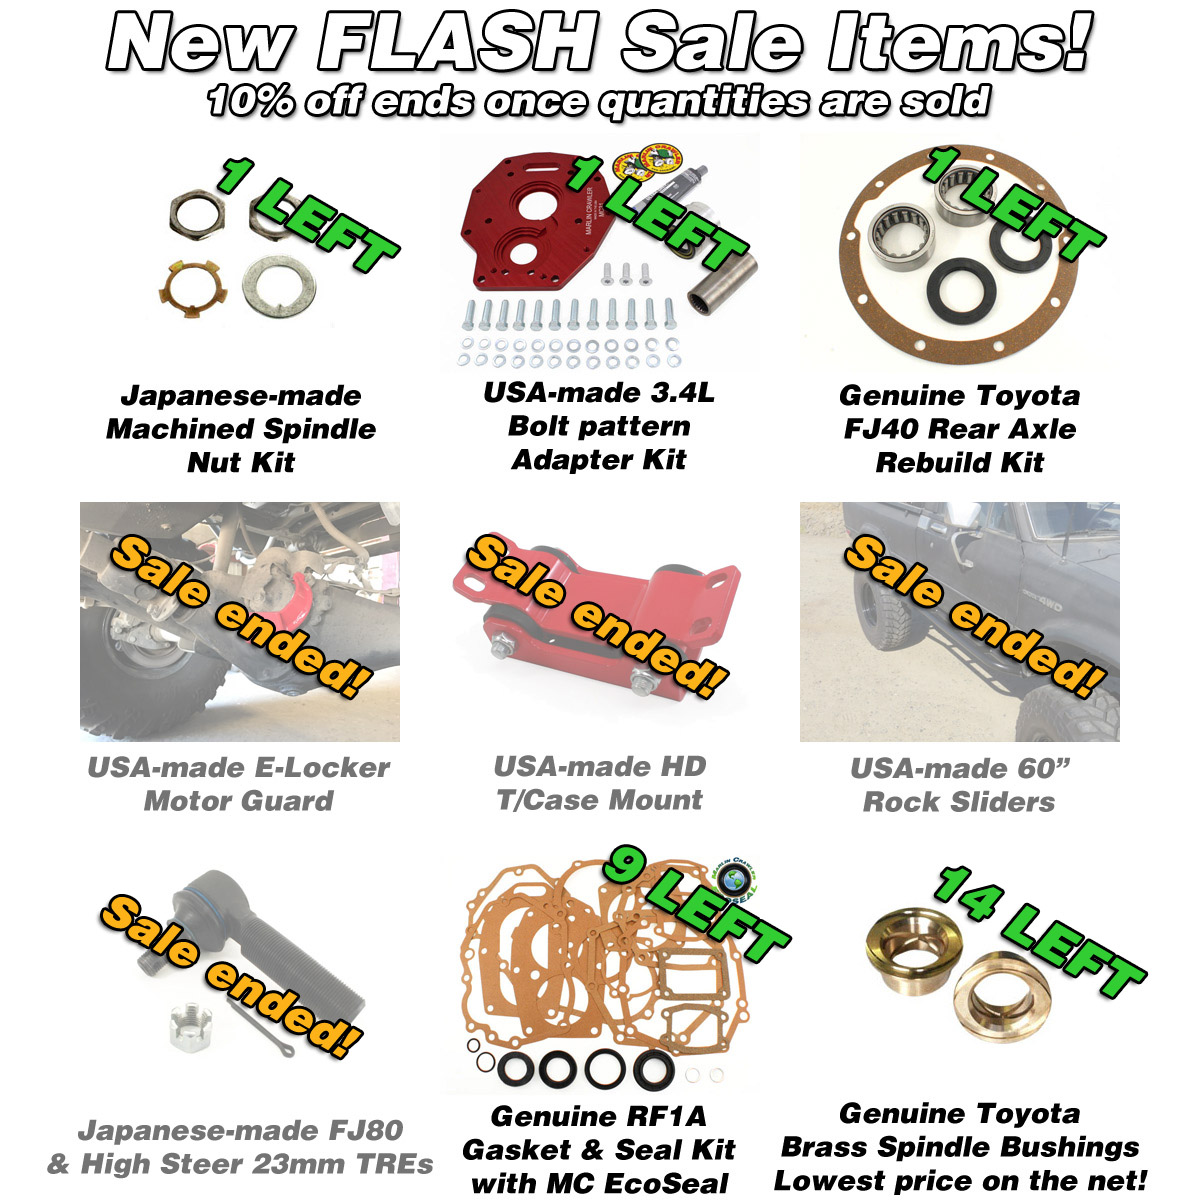 Few items remaining on our Mid September FLASH Sale